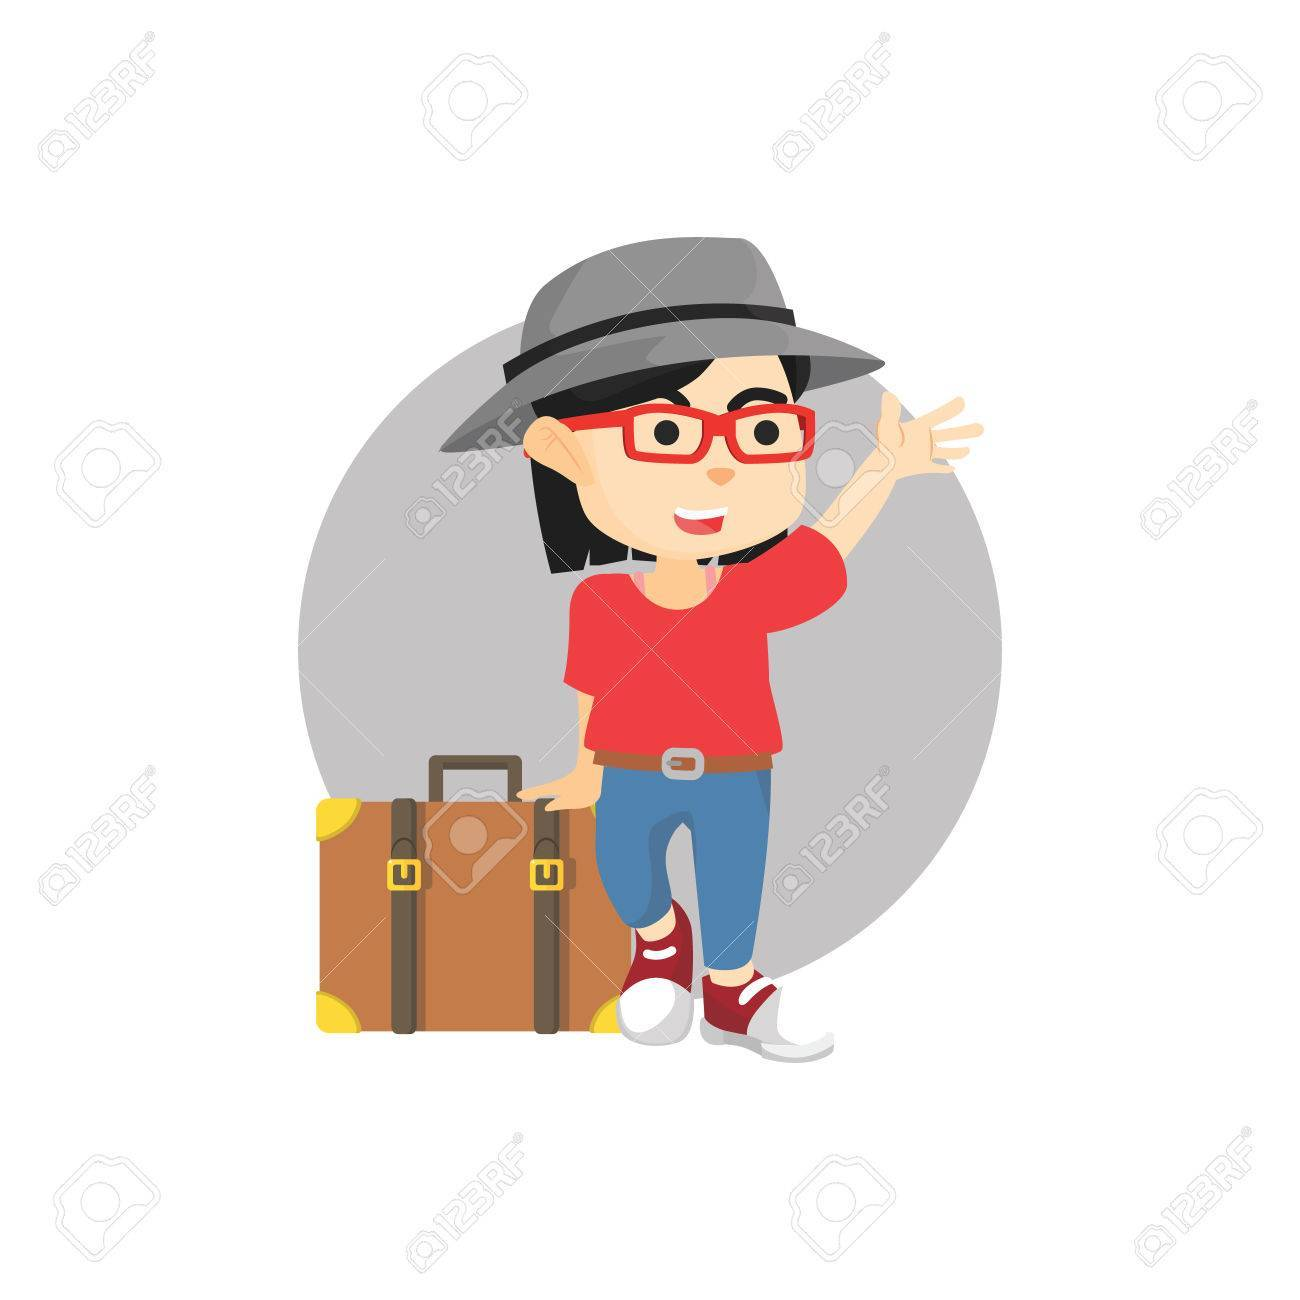 Travel girl clipart » Clipart Portal.